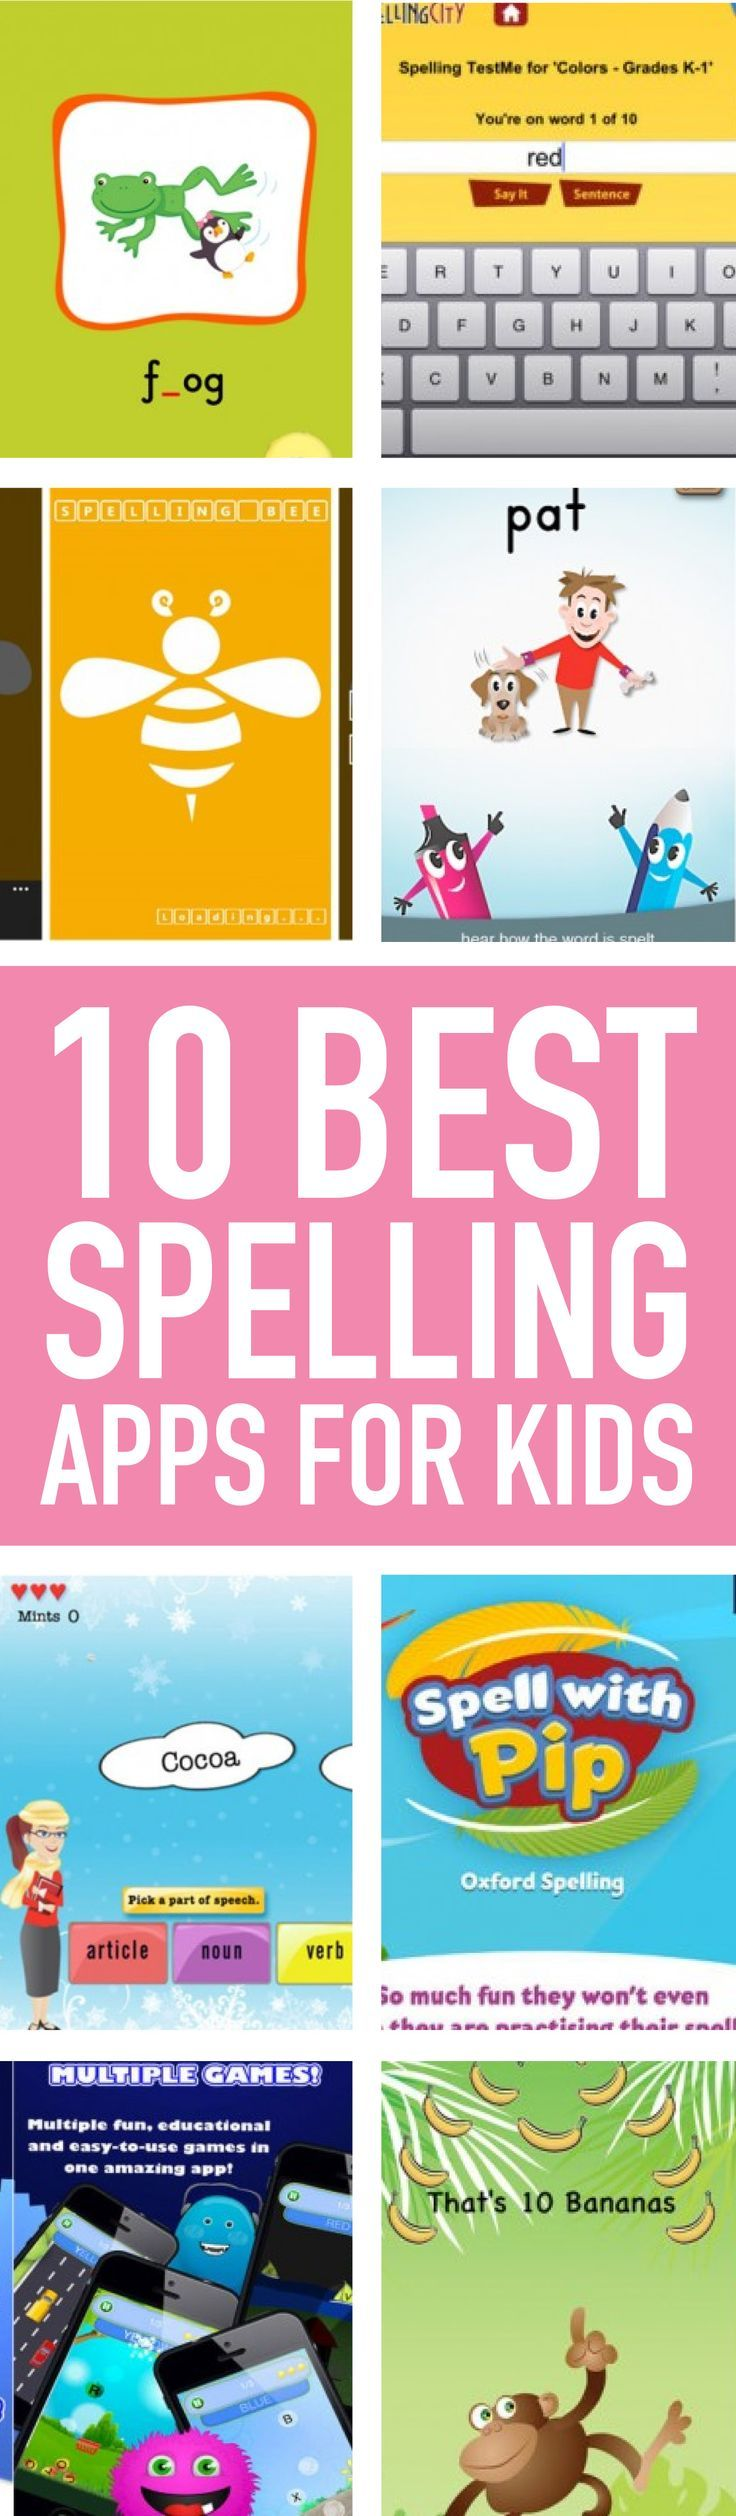 These popular spelling apps are perfect tools to help kids learn spelling, grammar and vocabulary—and have fun doing it!